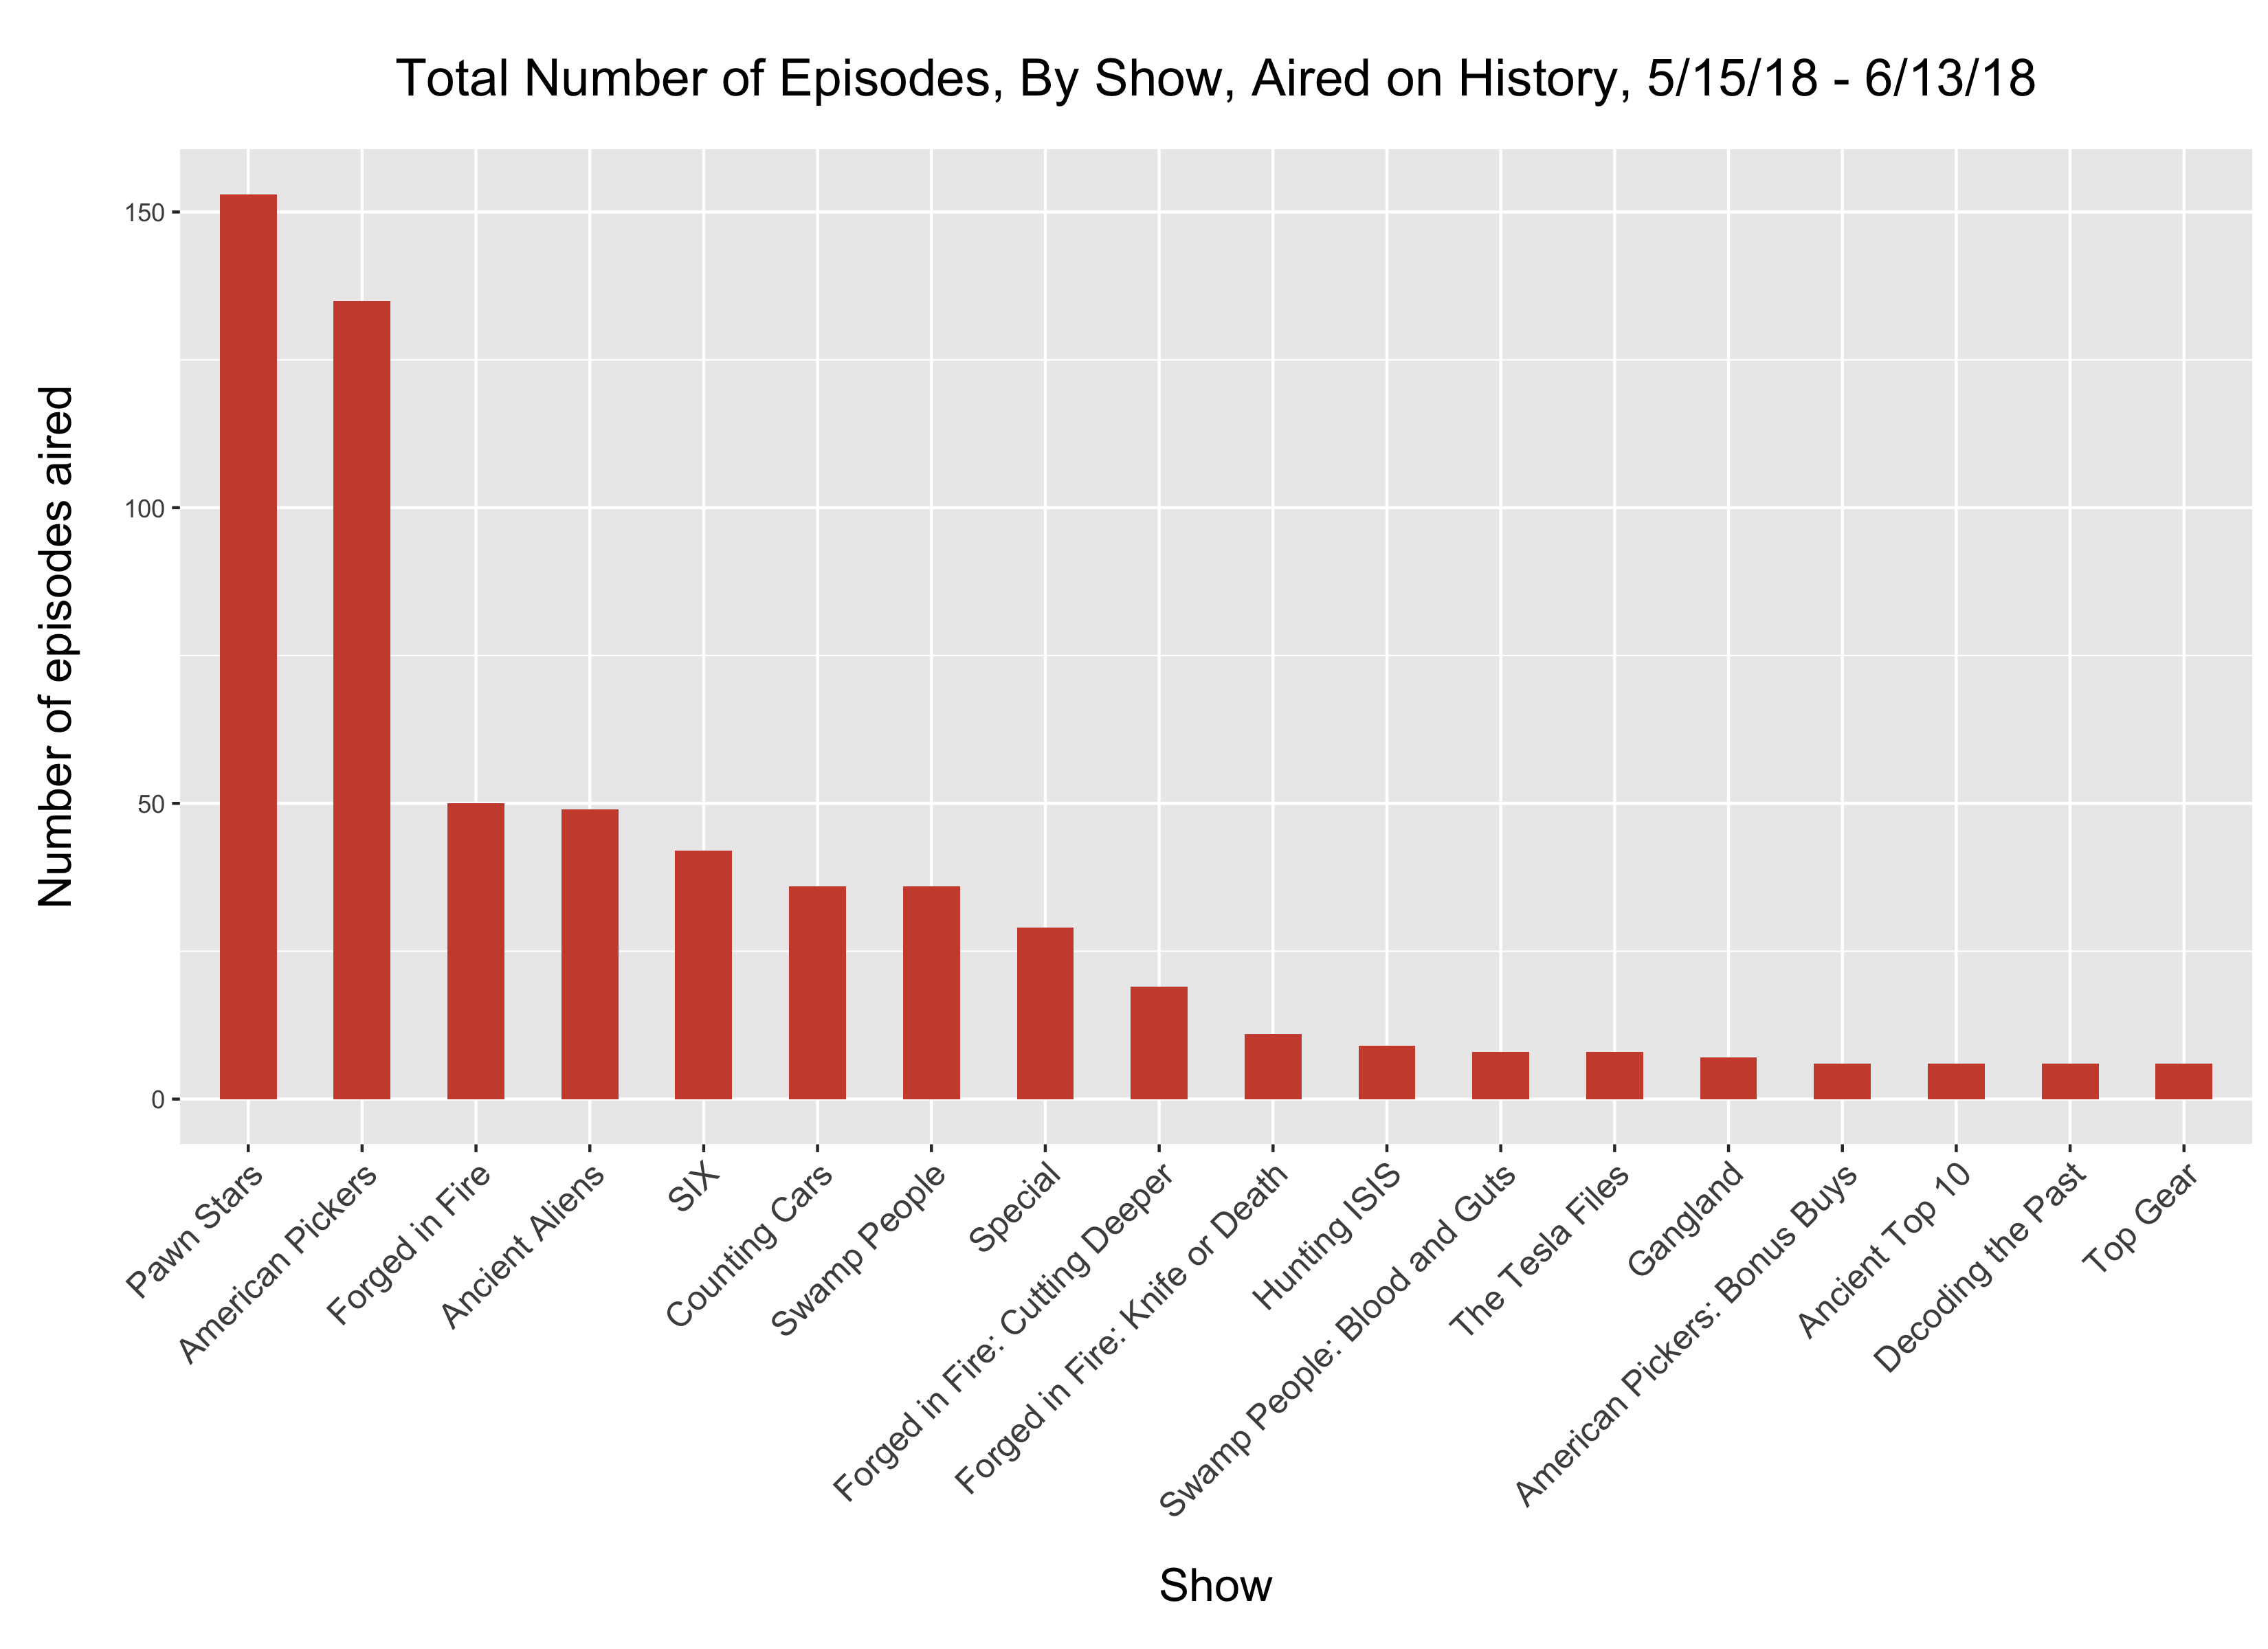 Vertical bar graph showing the number of episodes of each show which aired on History during the study period.